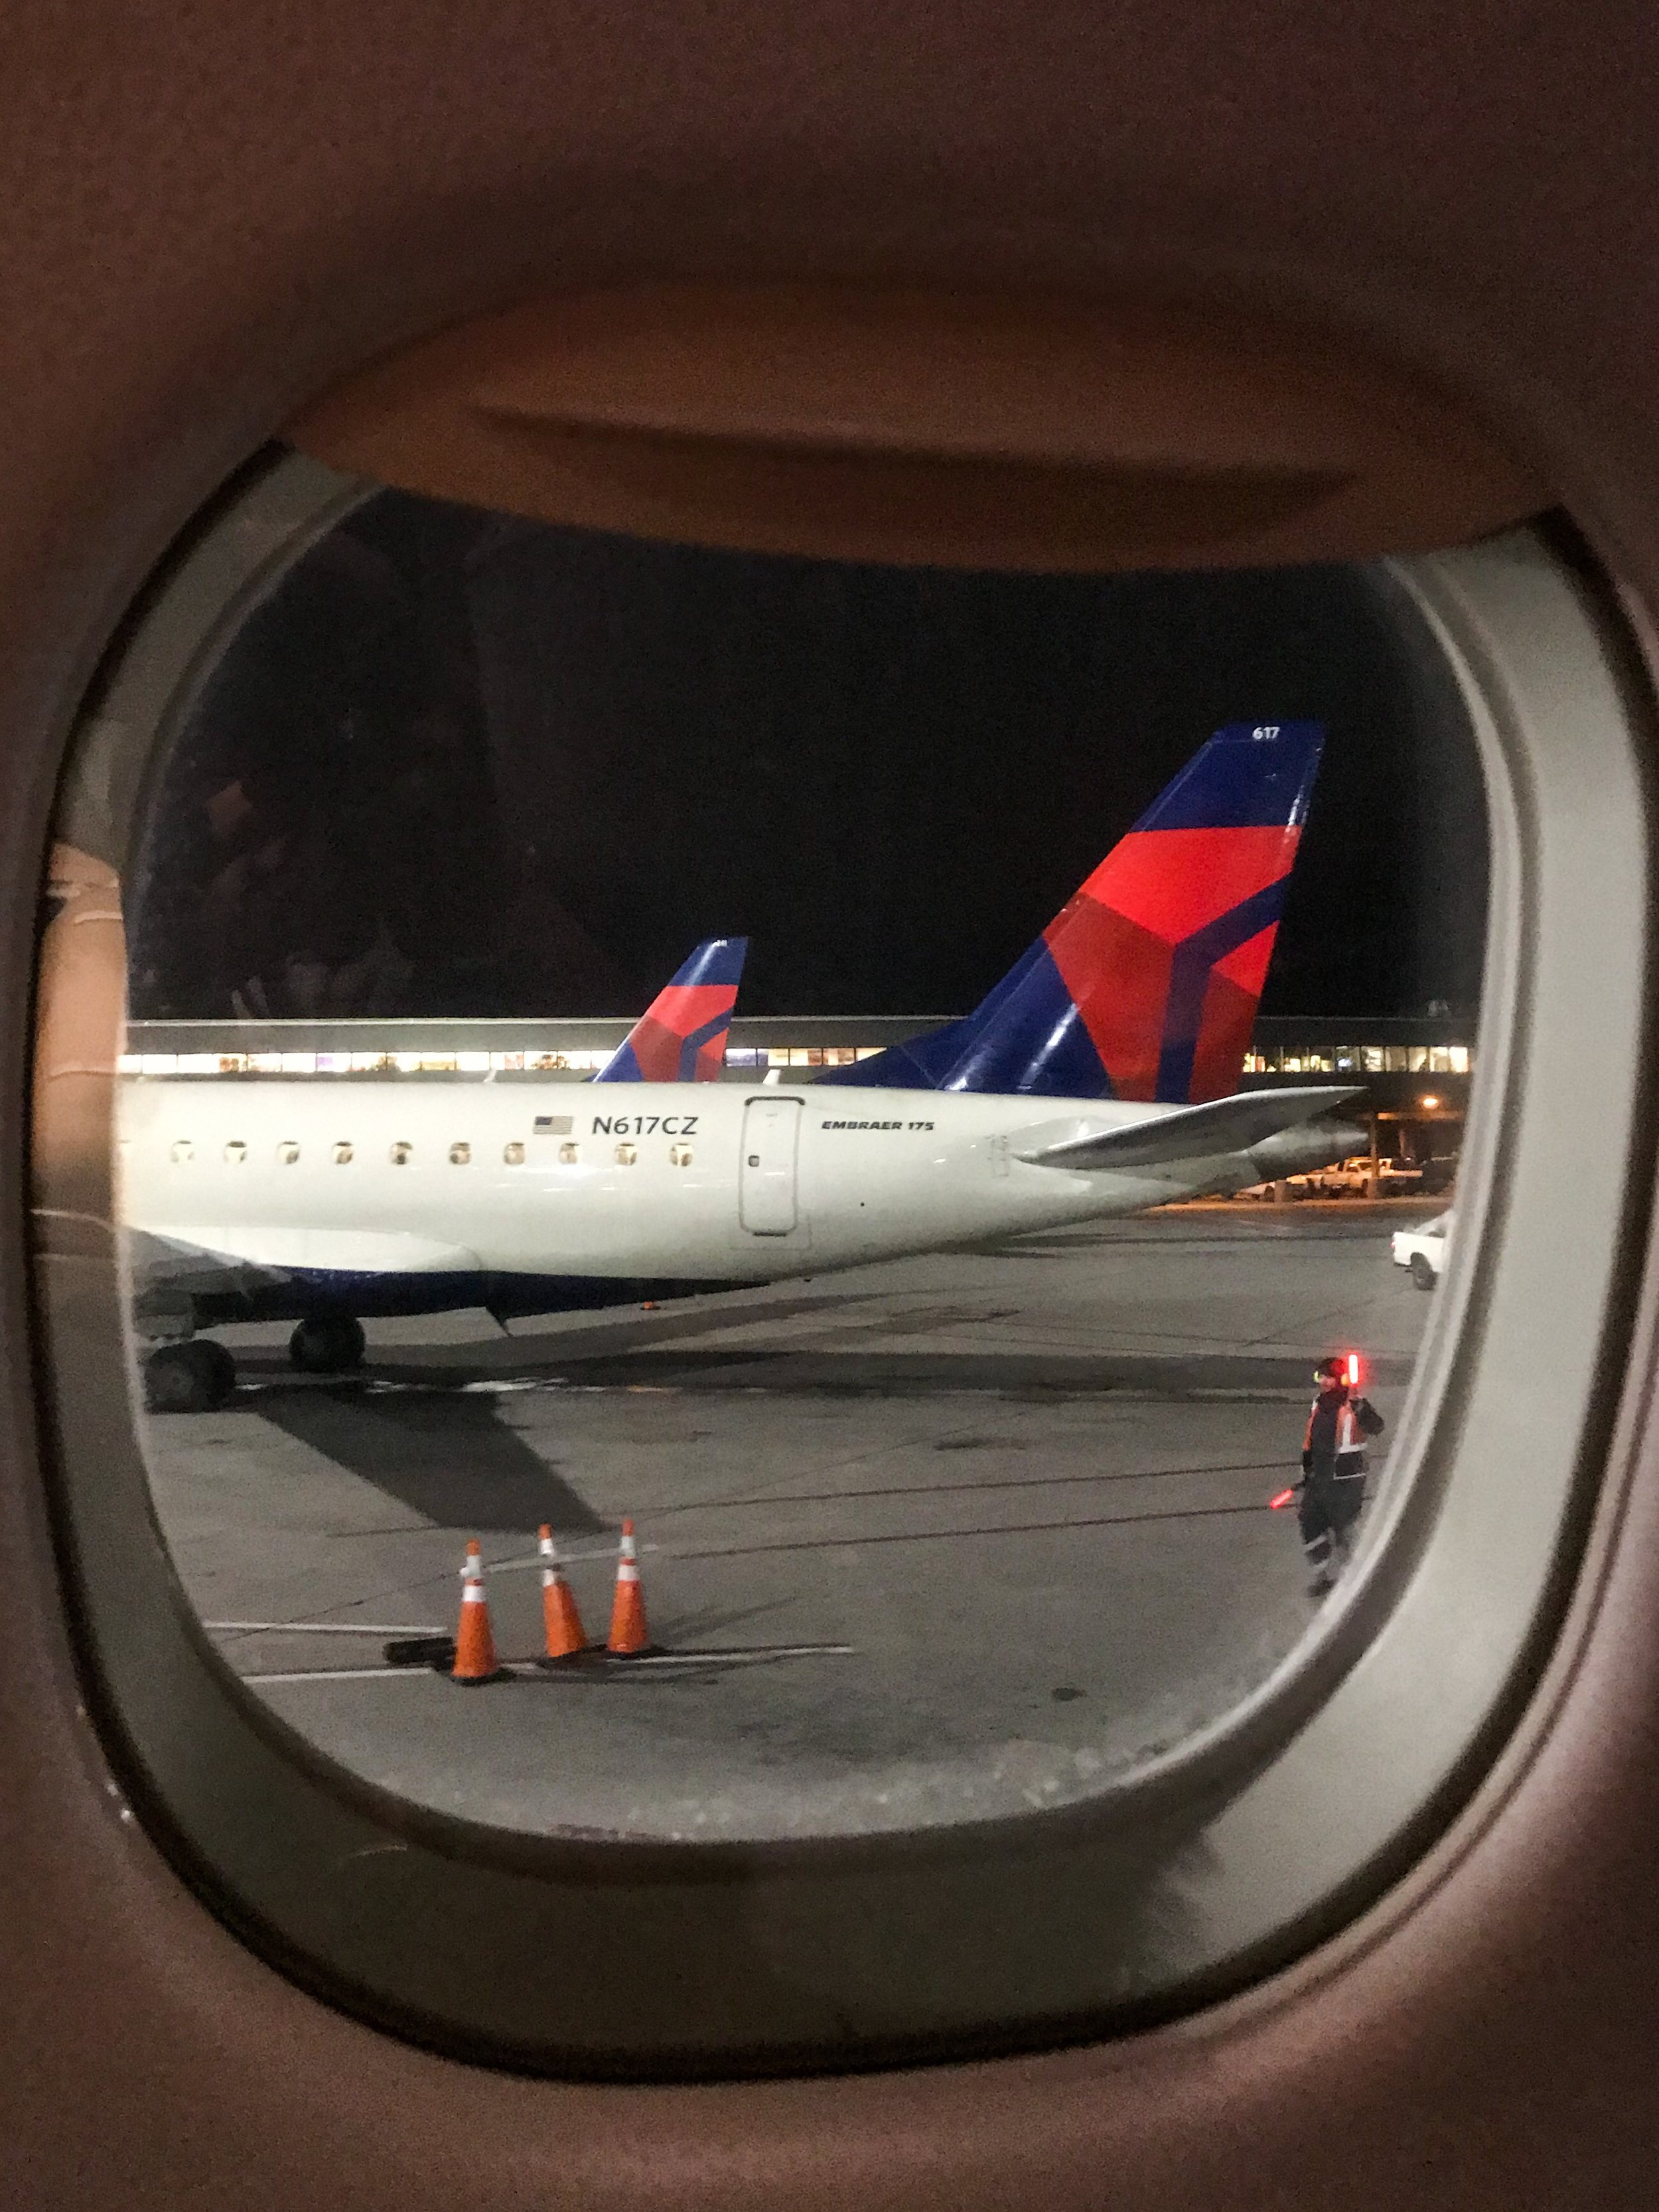 Parked next to two other ERJ-175s on the ground in Salt Lake City.